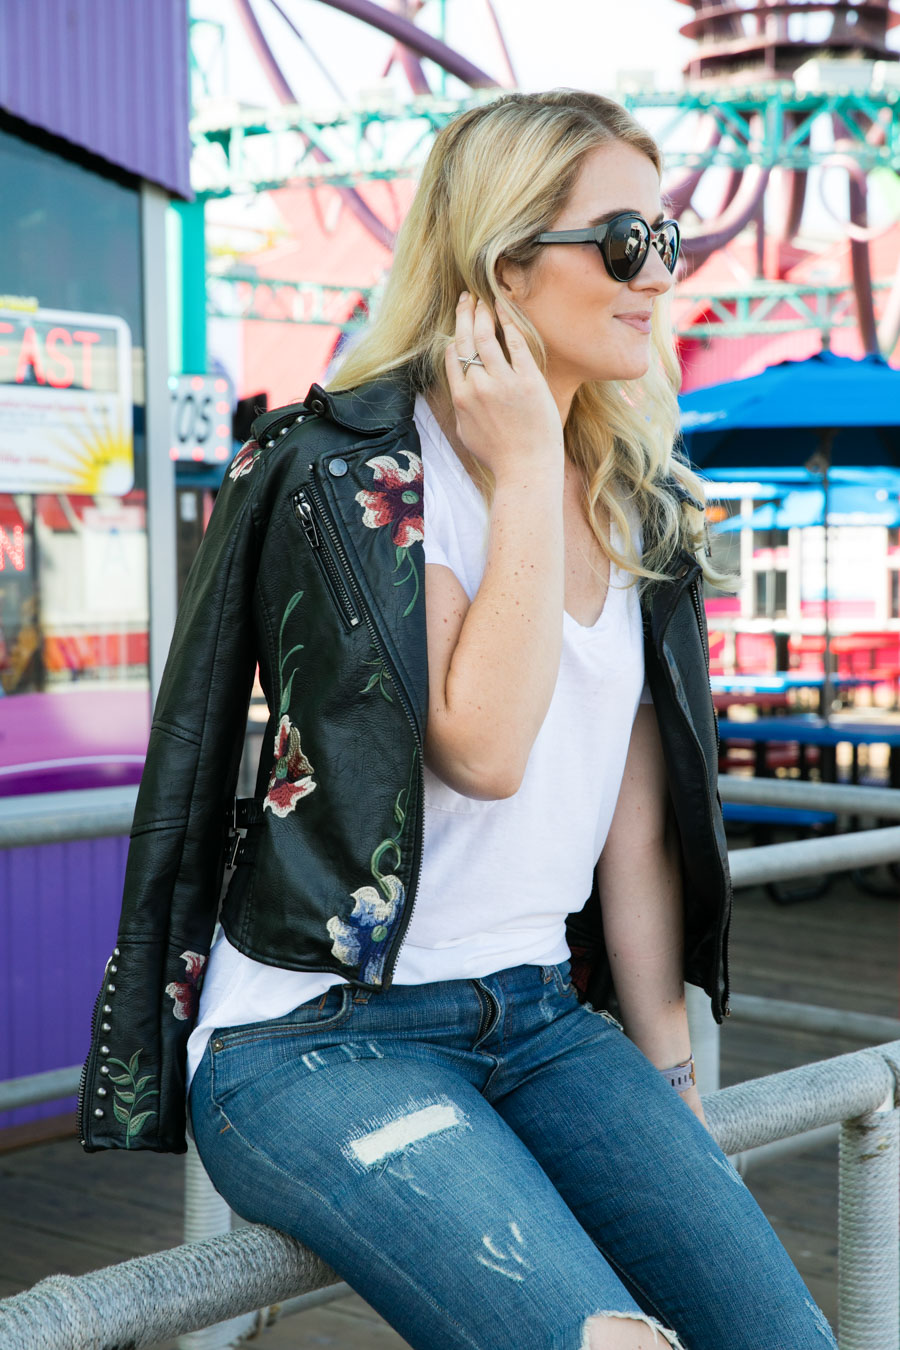 Casual Embroidered Leather Jacket Outfit w. Distress Jeans for Fall